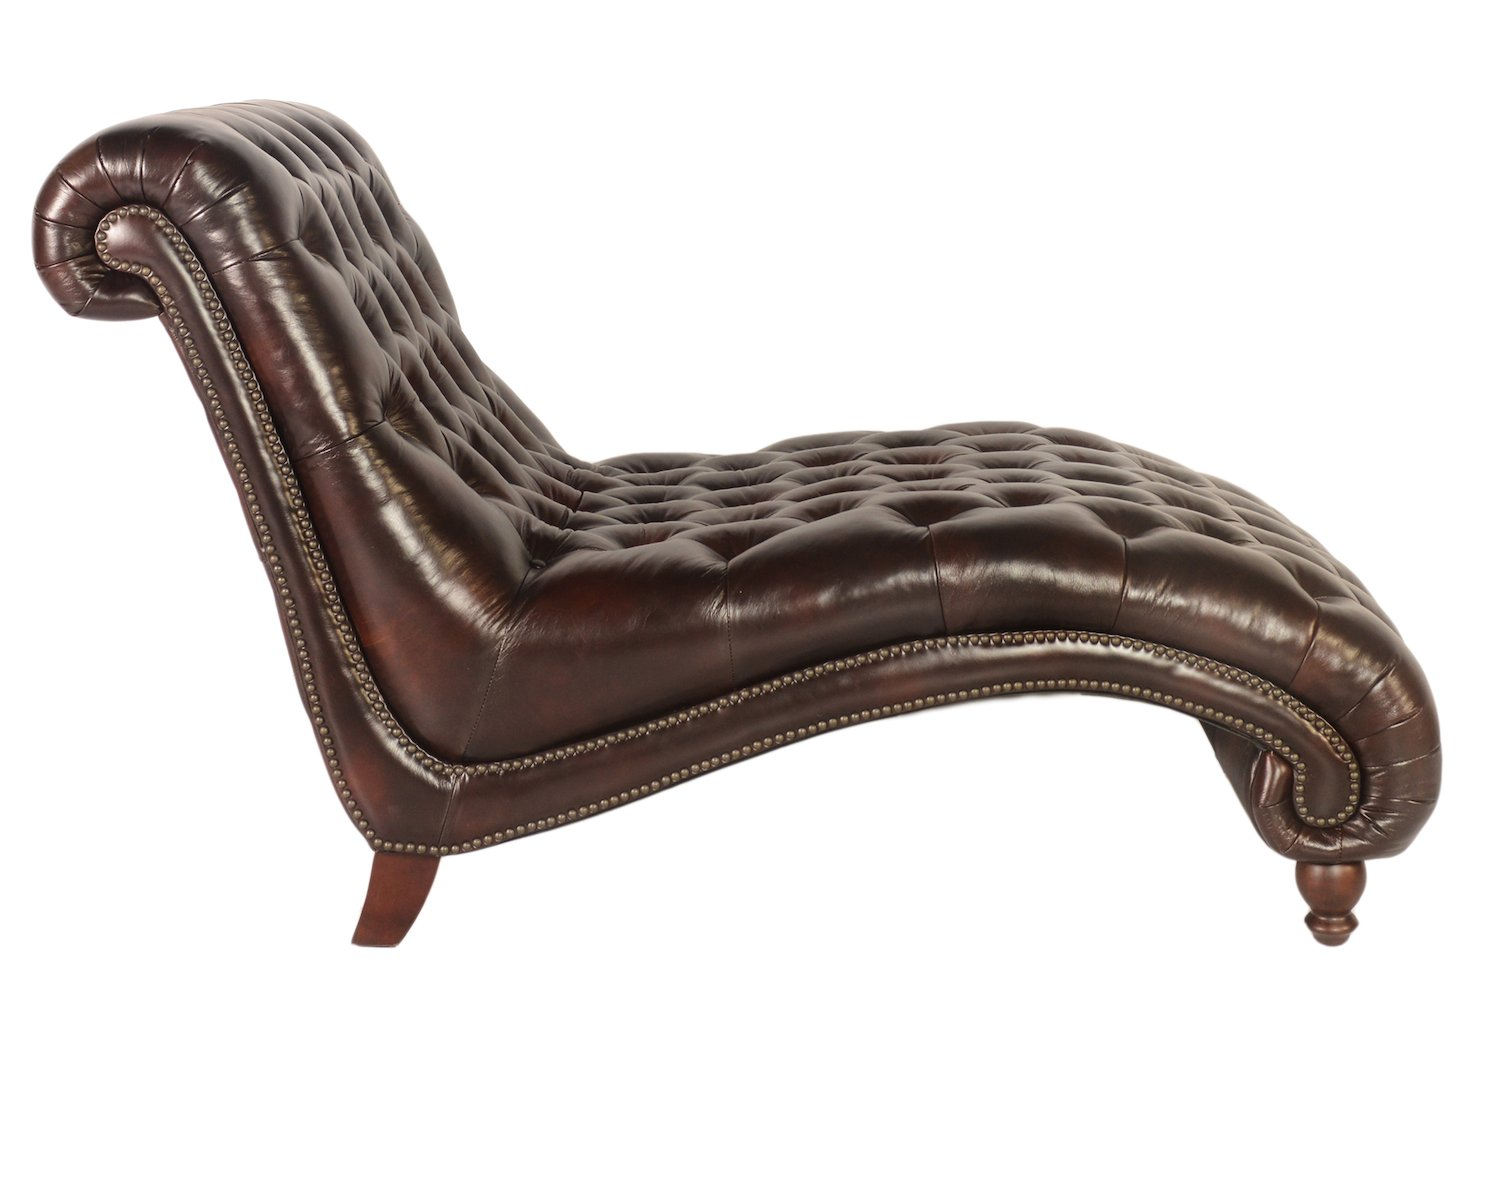 chairs lounge chaise uk faux josephine ashley chair leather furniture brown black indoors victorian